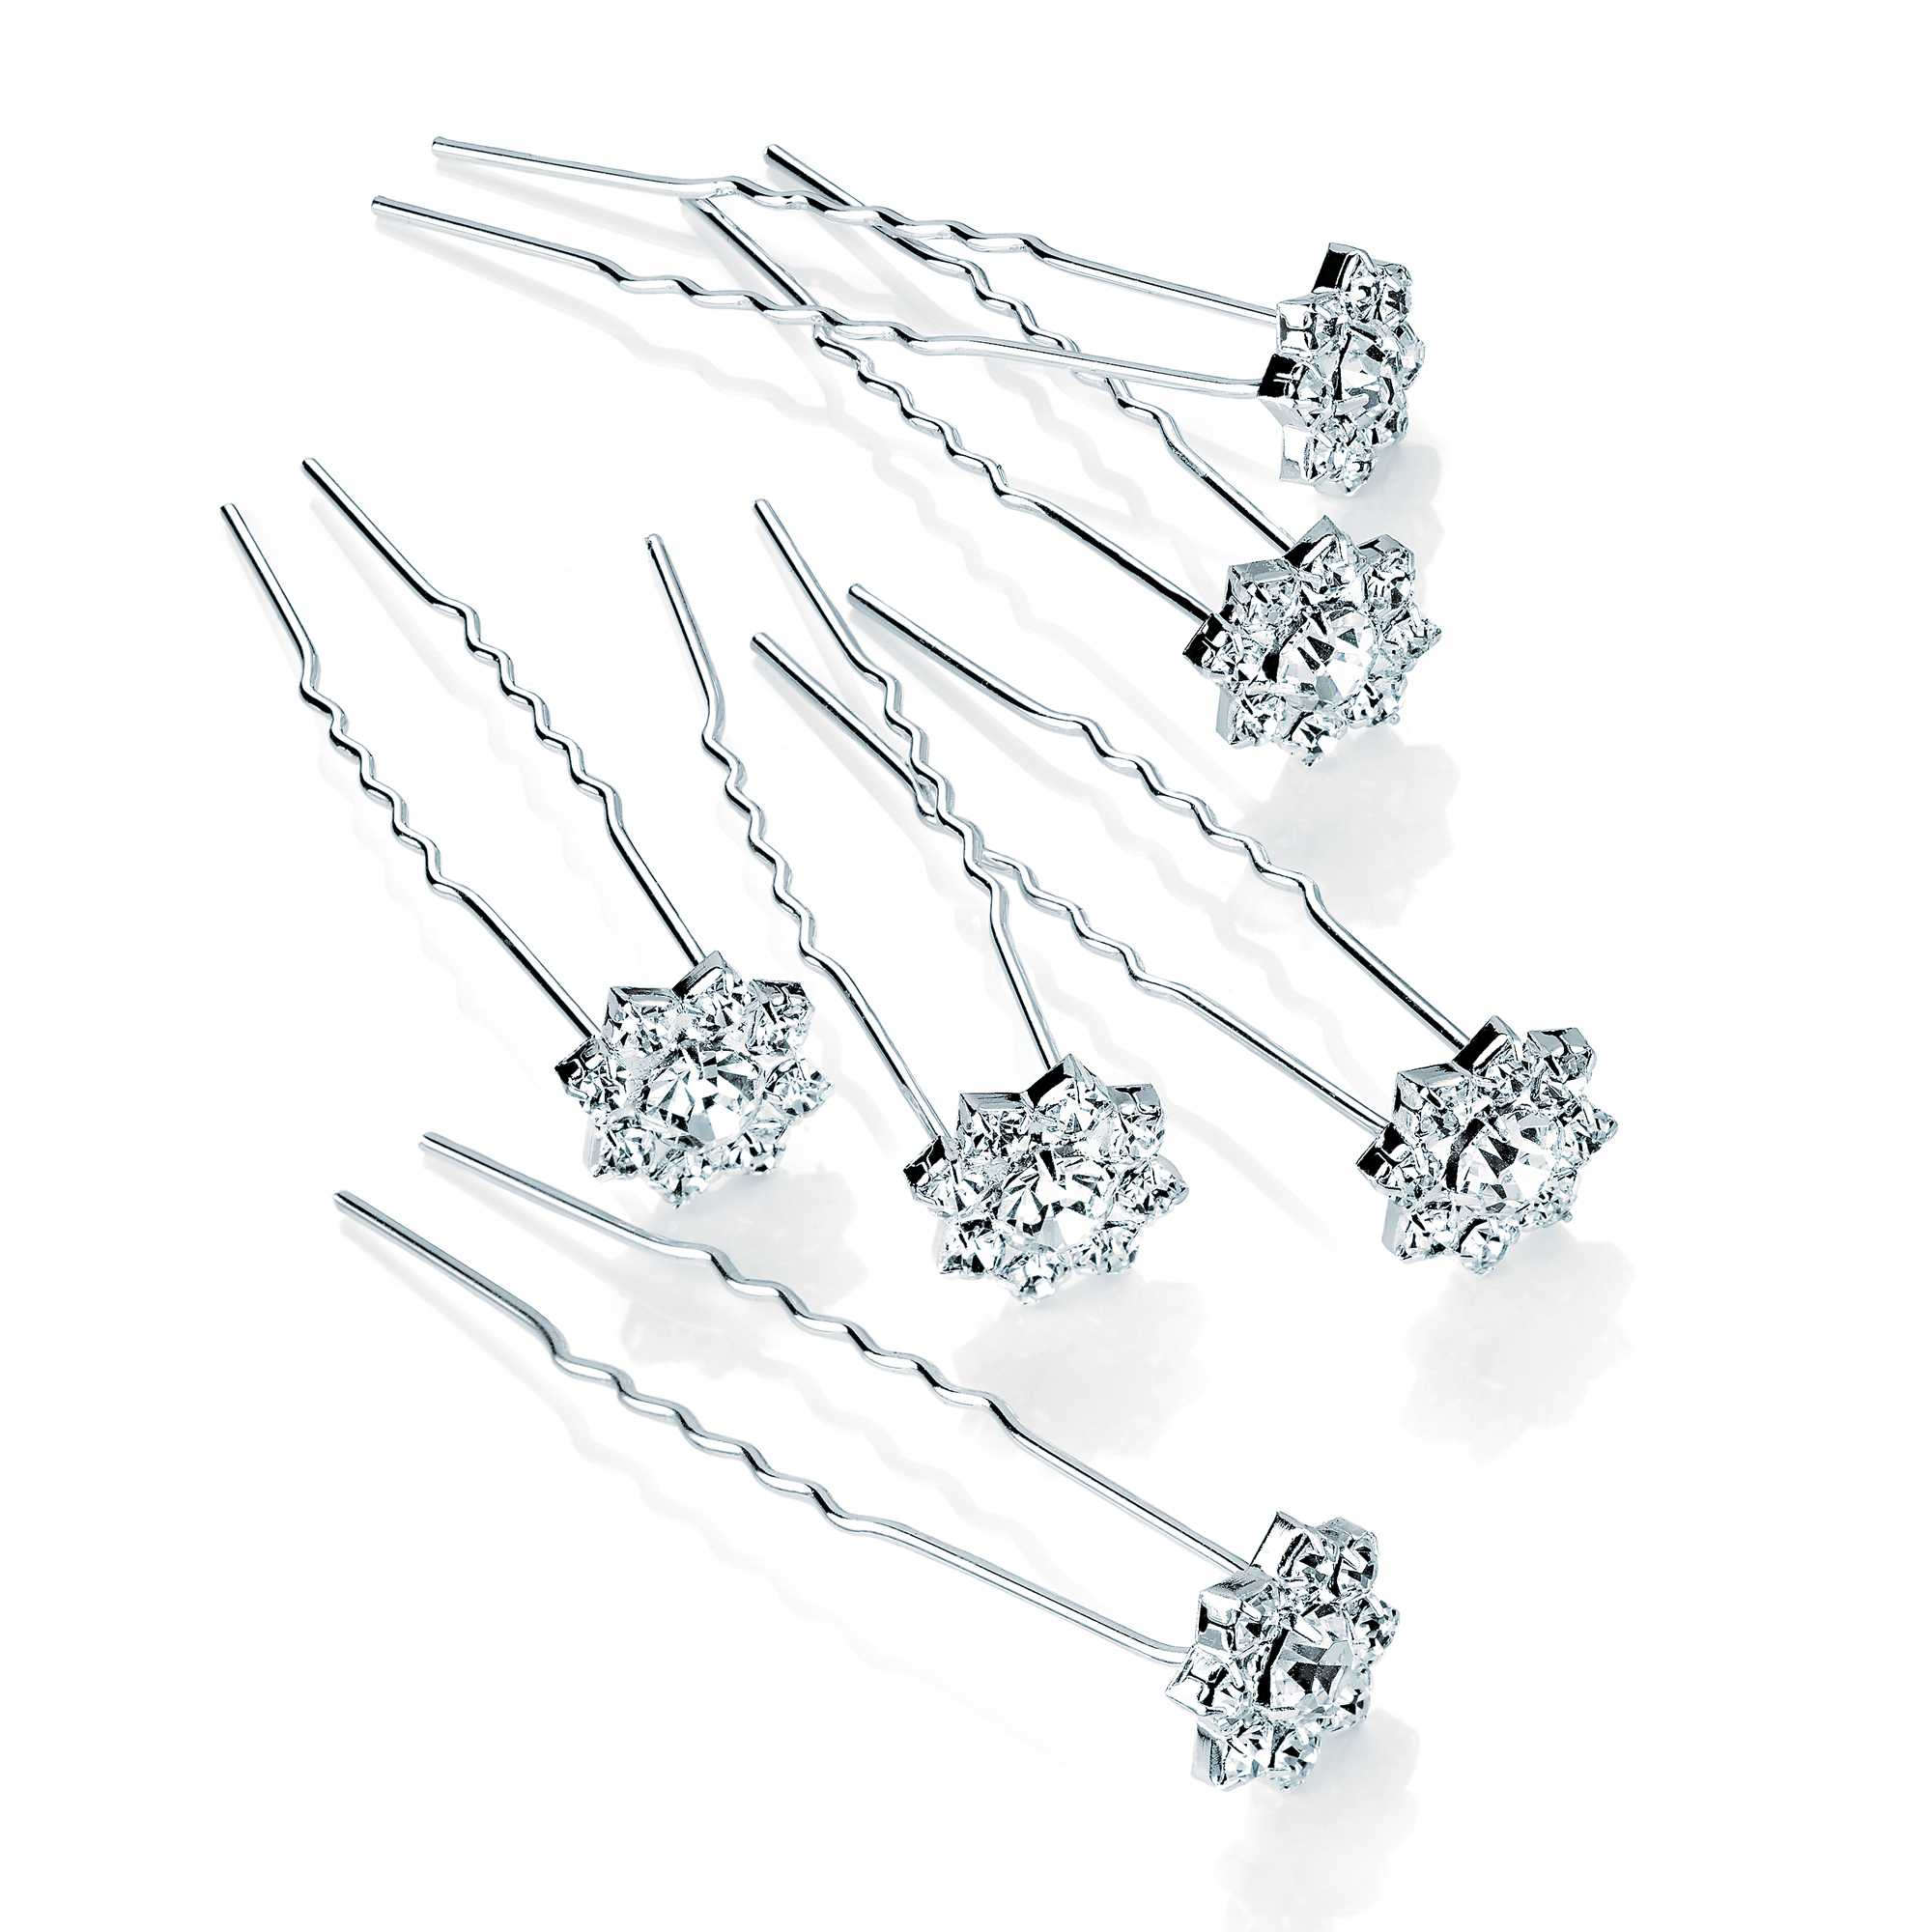 Six Piece Silver Colour Crystal Metal Hair Pin Set